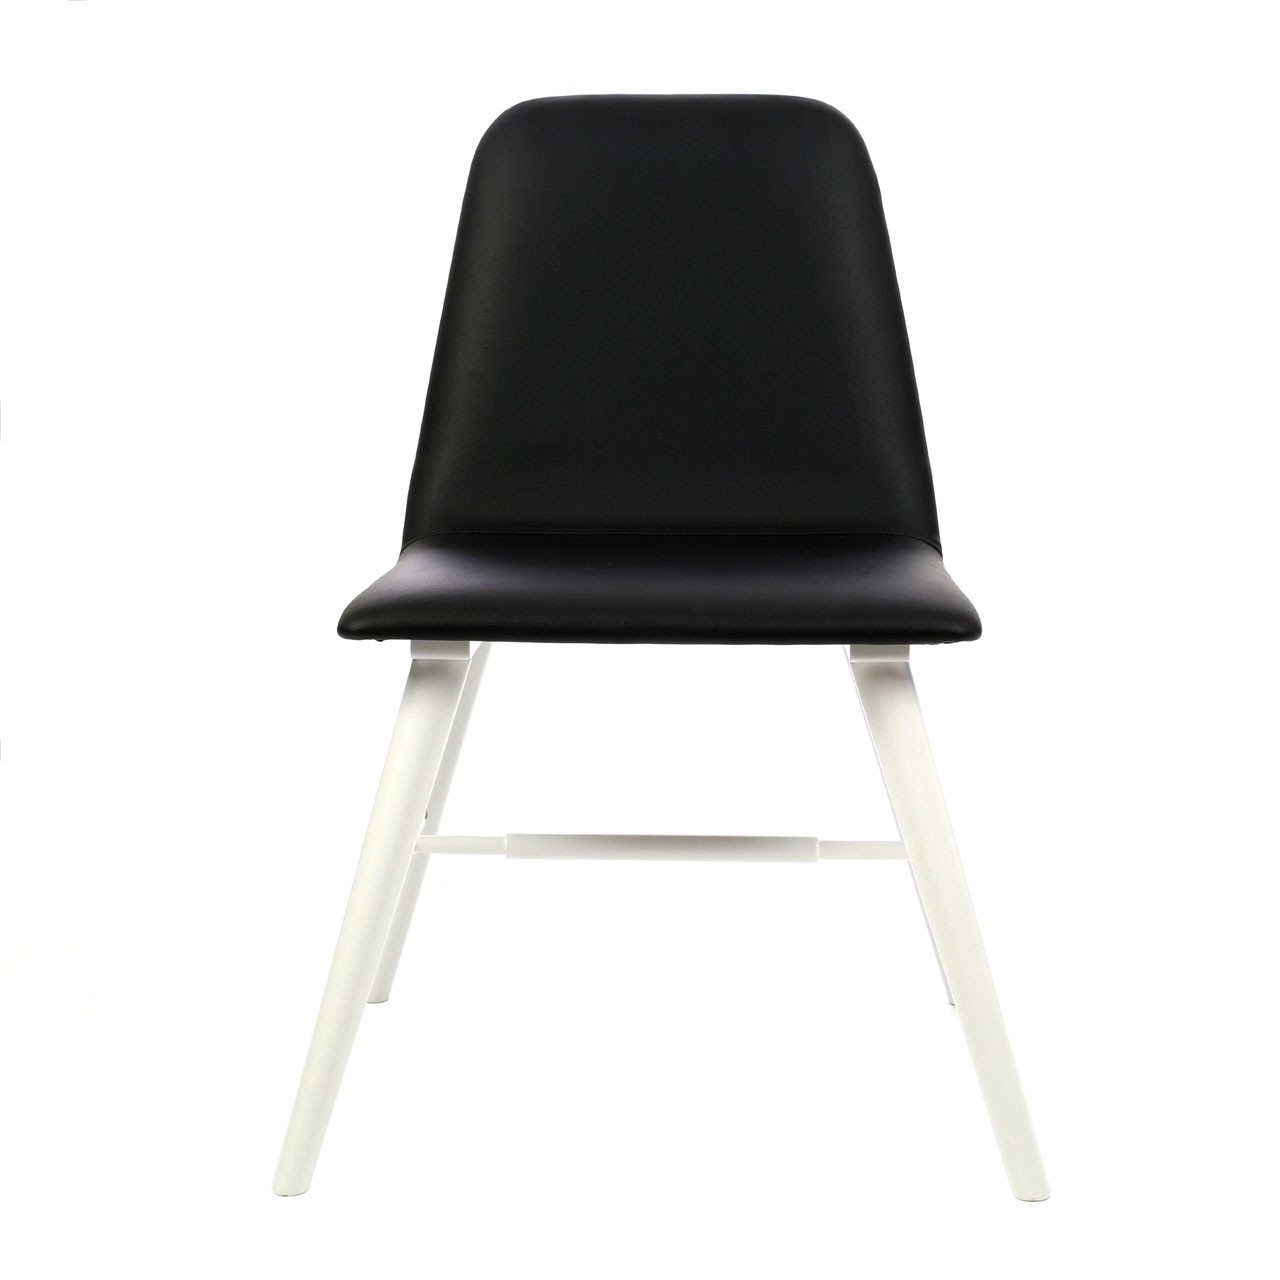 2 Dining Chair Black Leather Effect White Legs